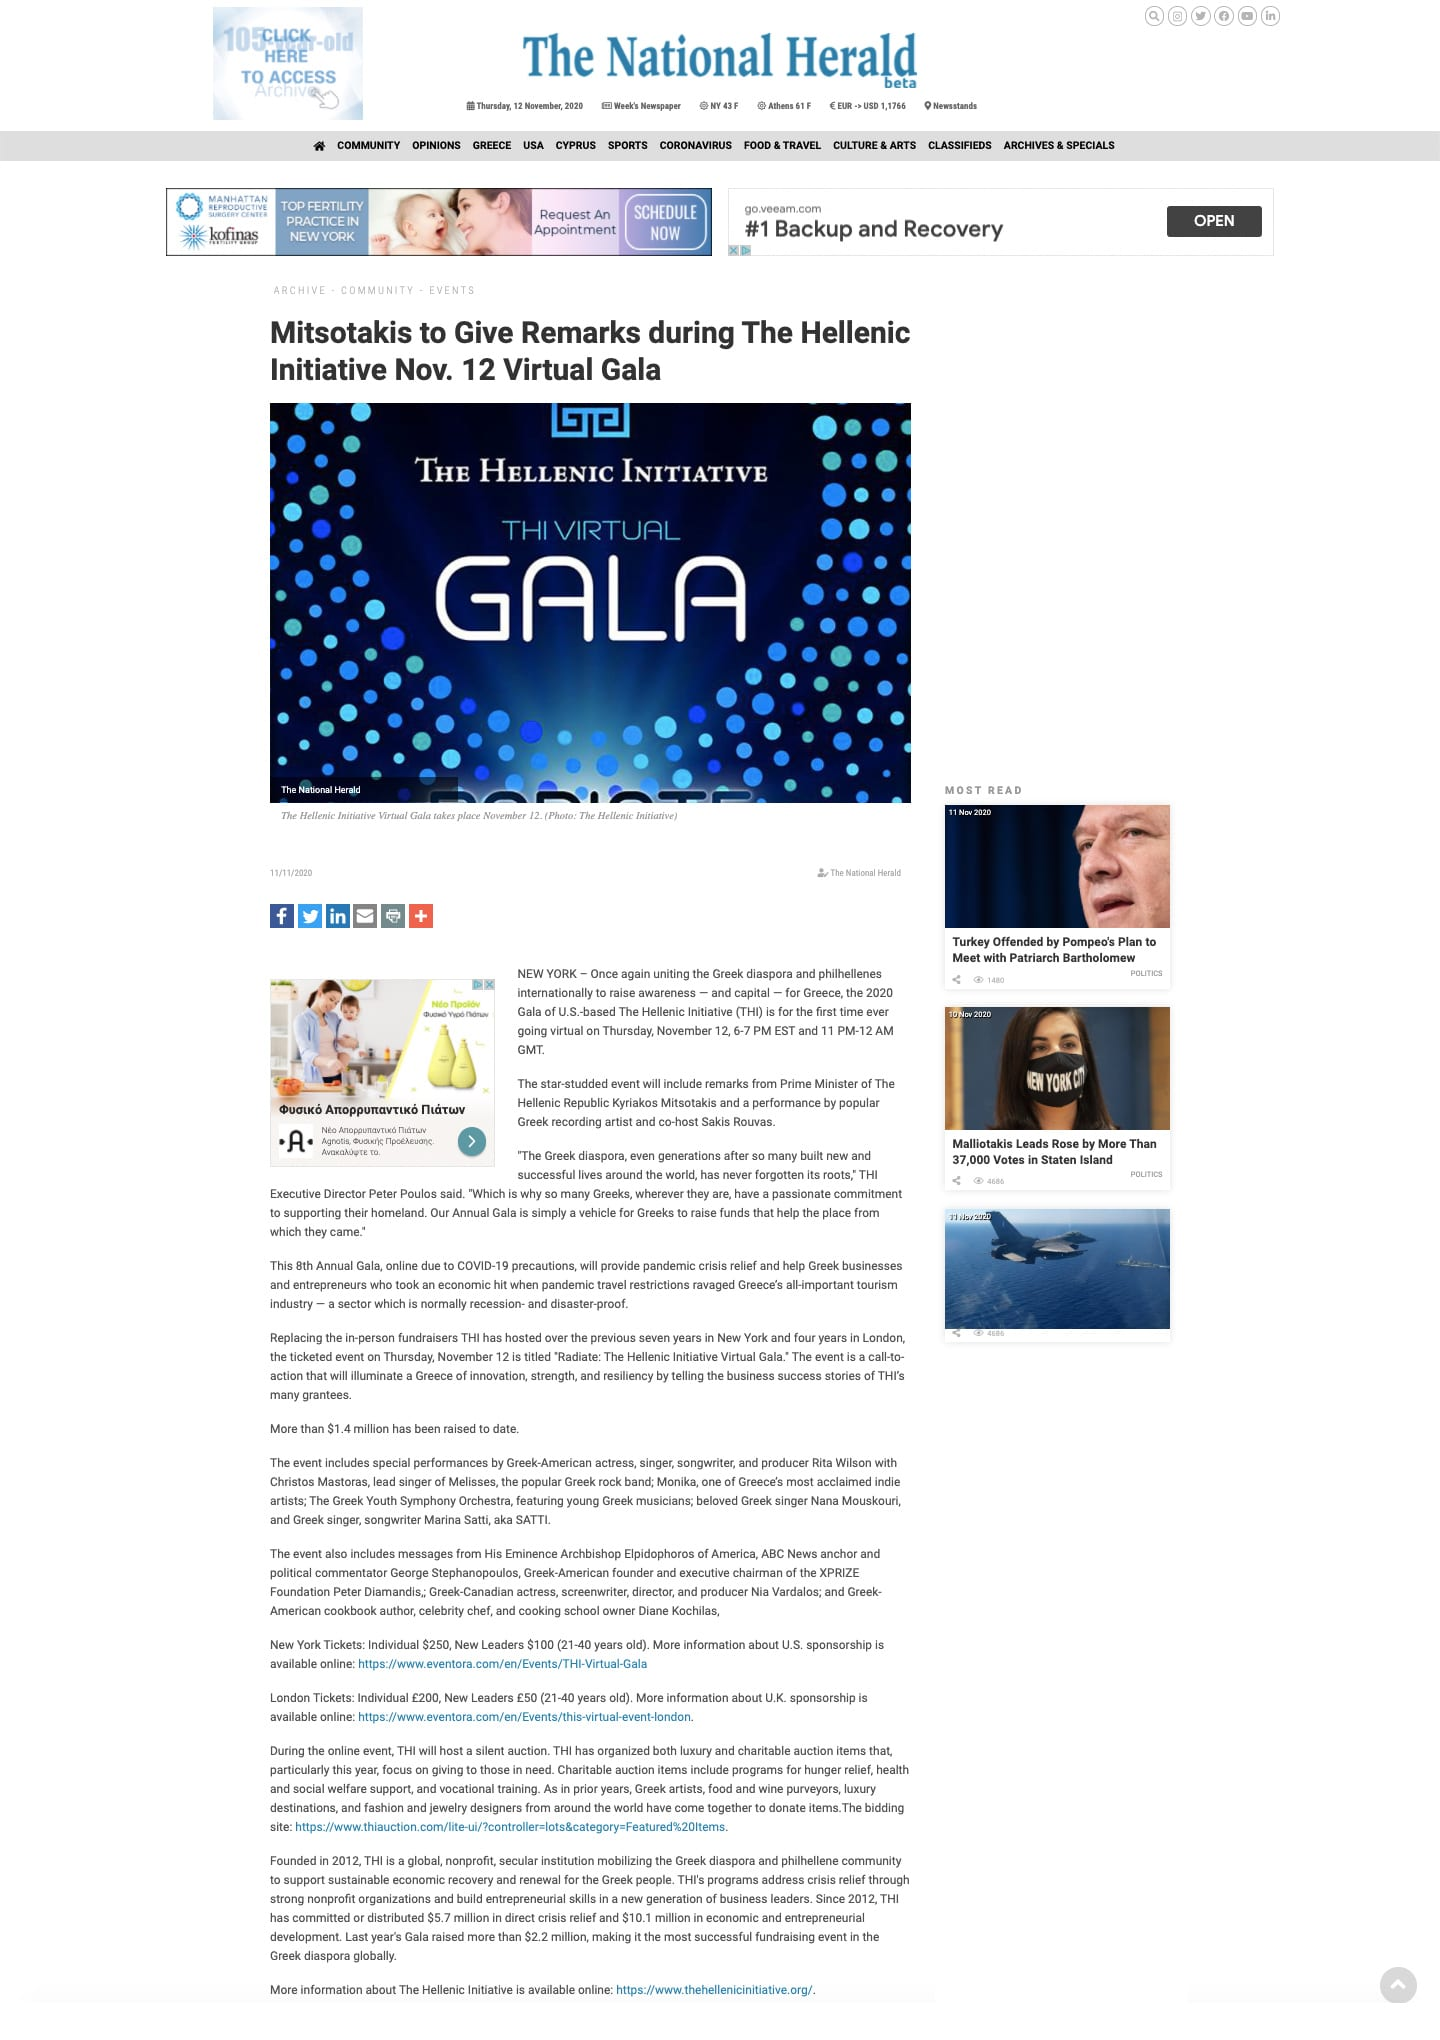 Mitsotakis to Give Remarks during The Hellenic Initiative Nov. 12 Virtual Gala